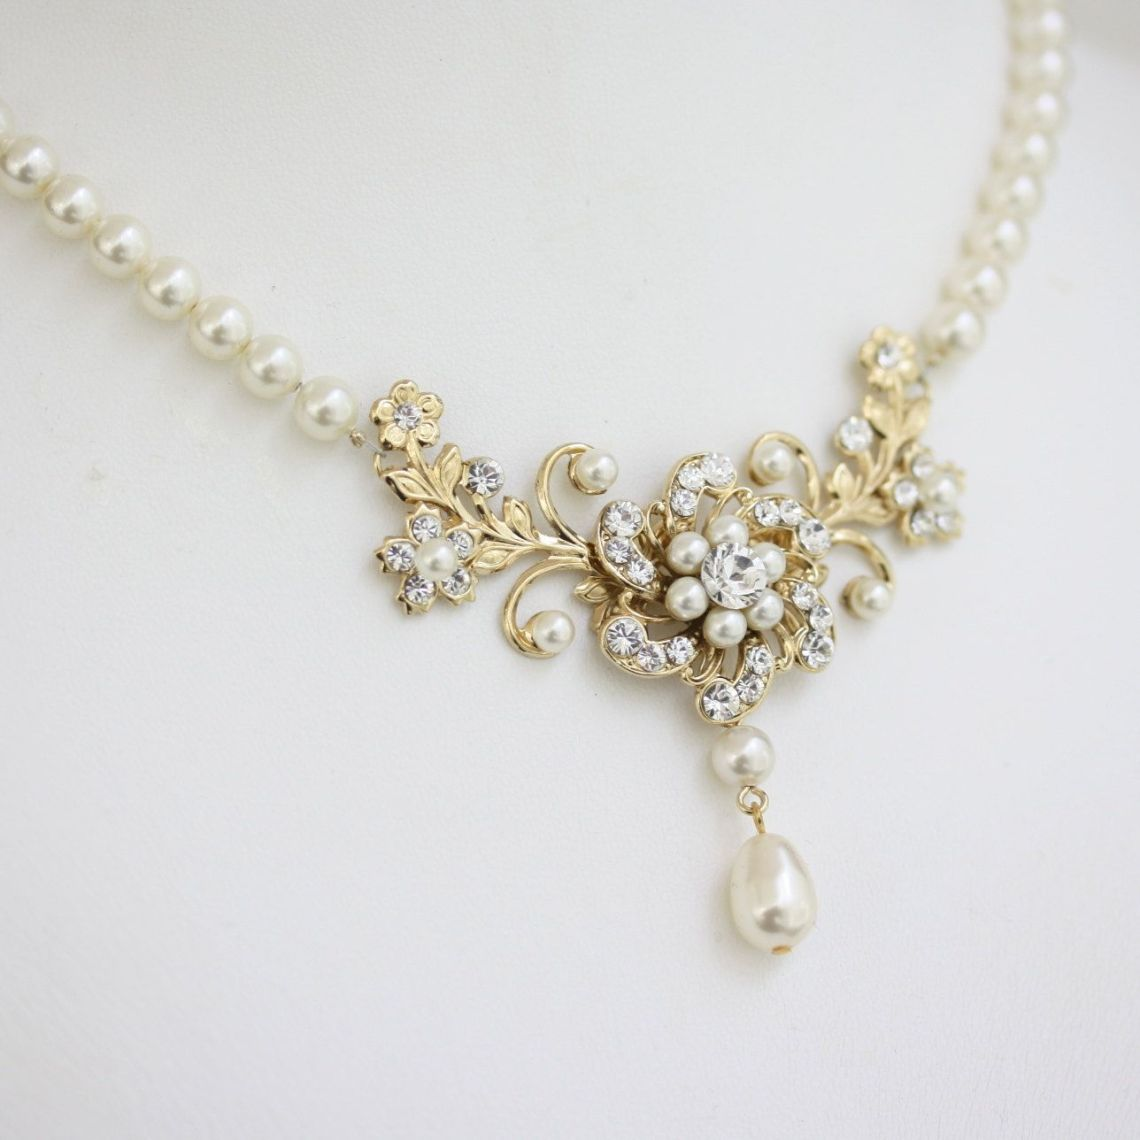 Image Result For Bridesmaid Jewelry Sets Wholesale Pearl